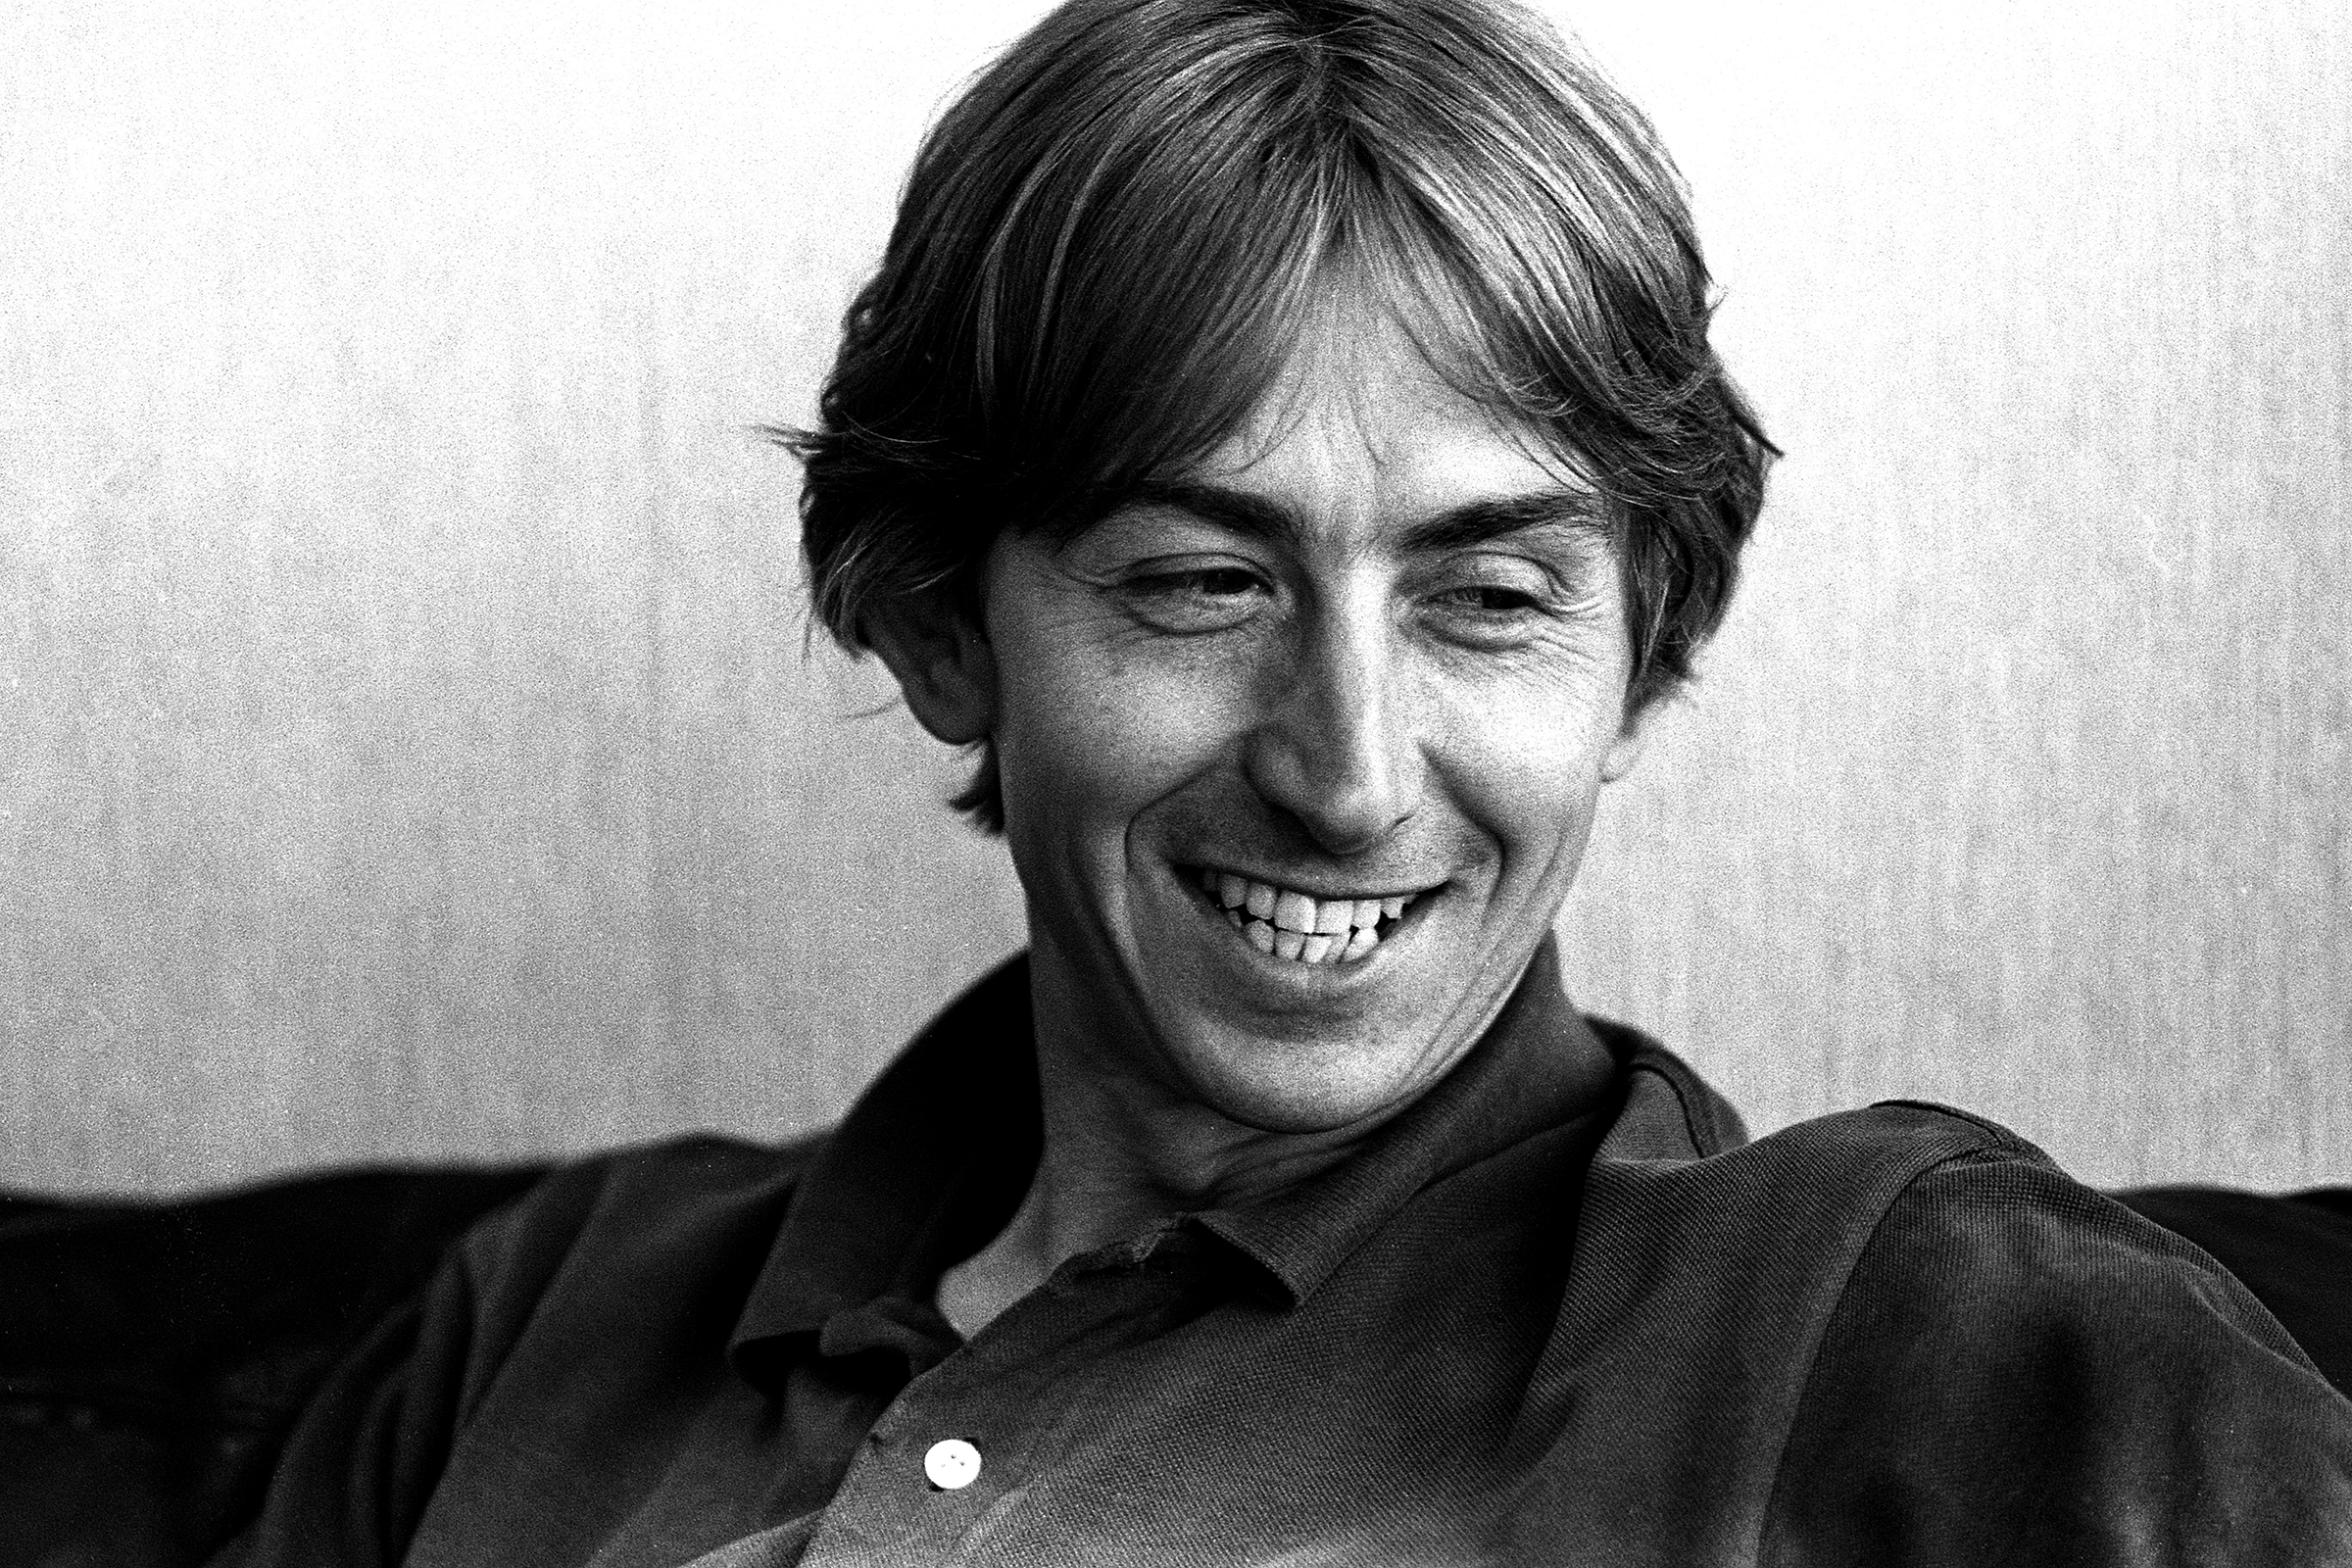 IMG MARK HOLLIS, The Lead Singer and Primary Songwriter of the Band Talk Talk